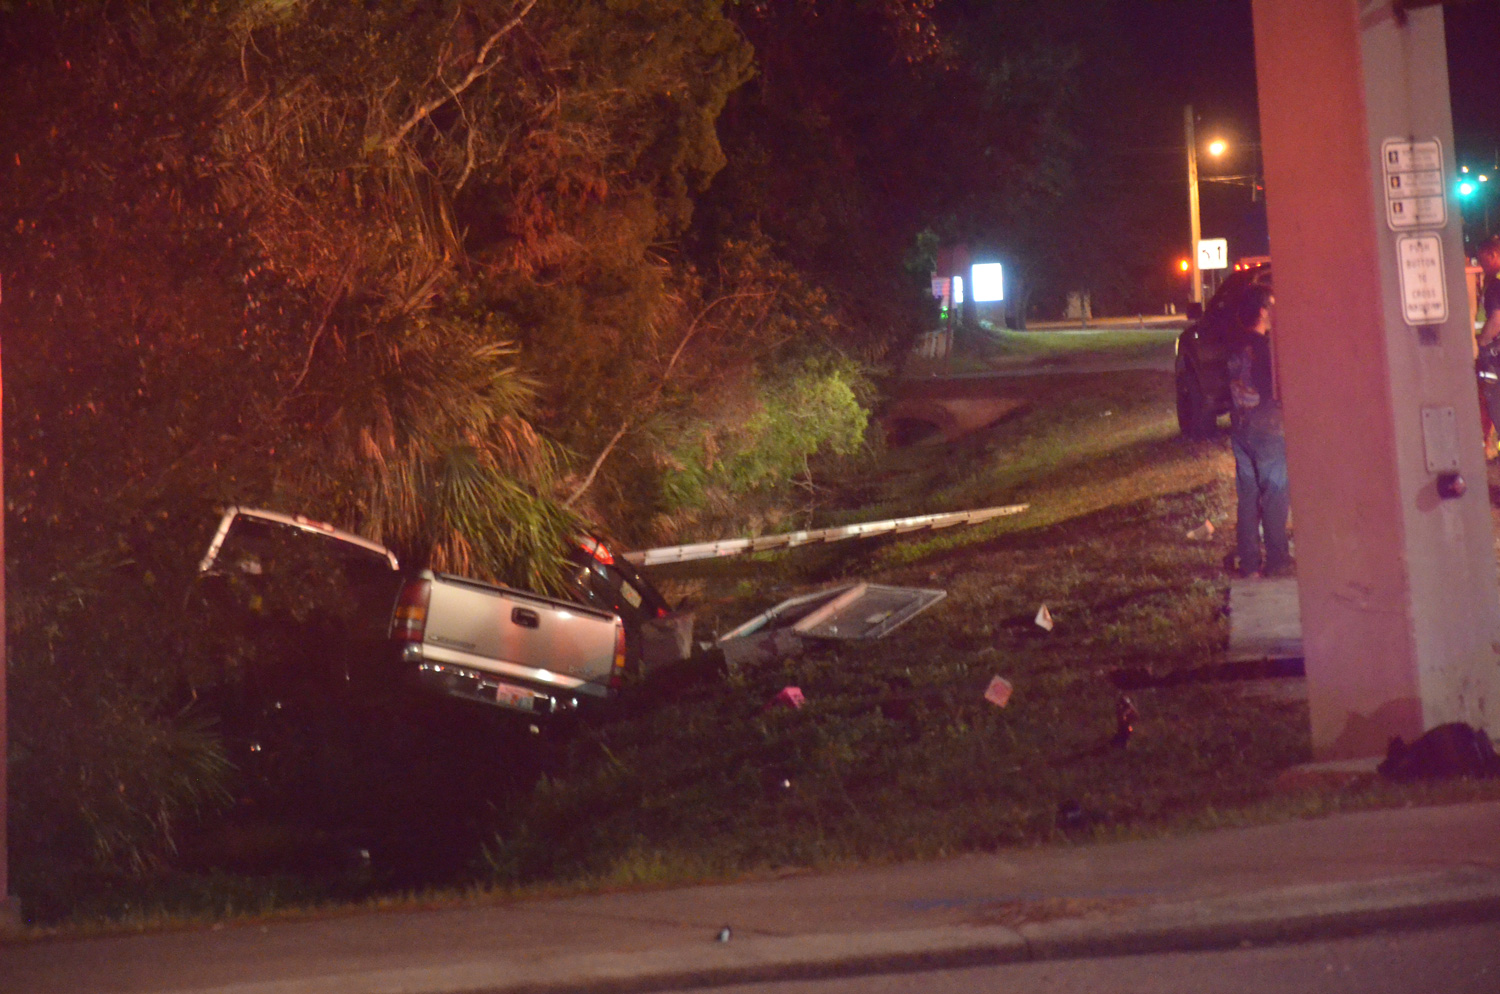 Both vehicles ended in the ditch at the south side of westbound Palm Coast Parkway. (c FlaglerLive)